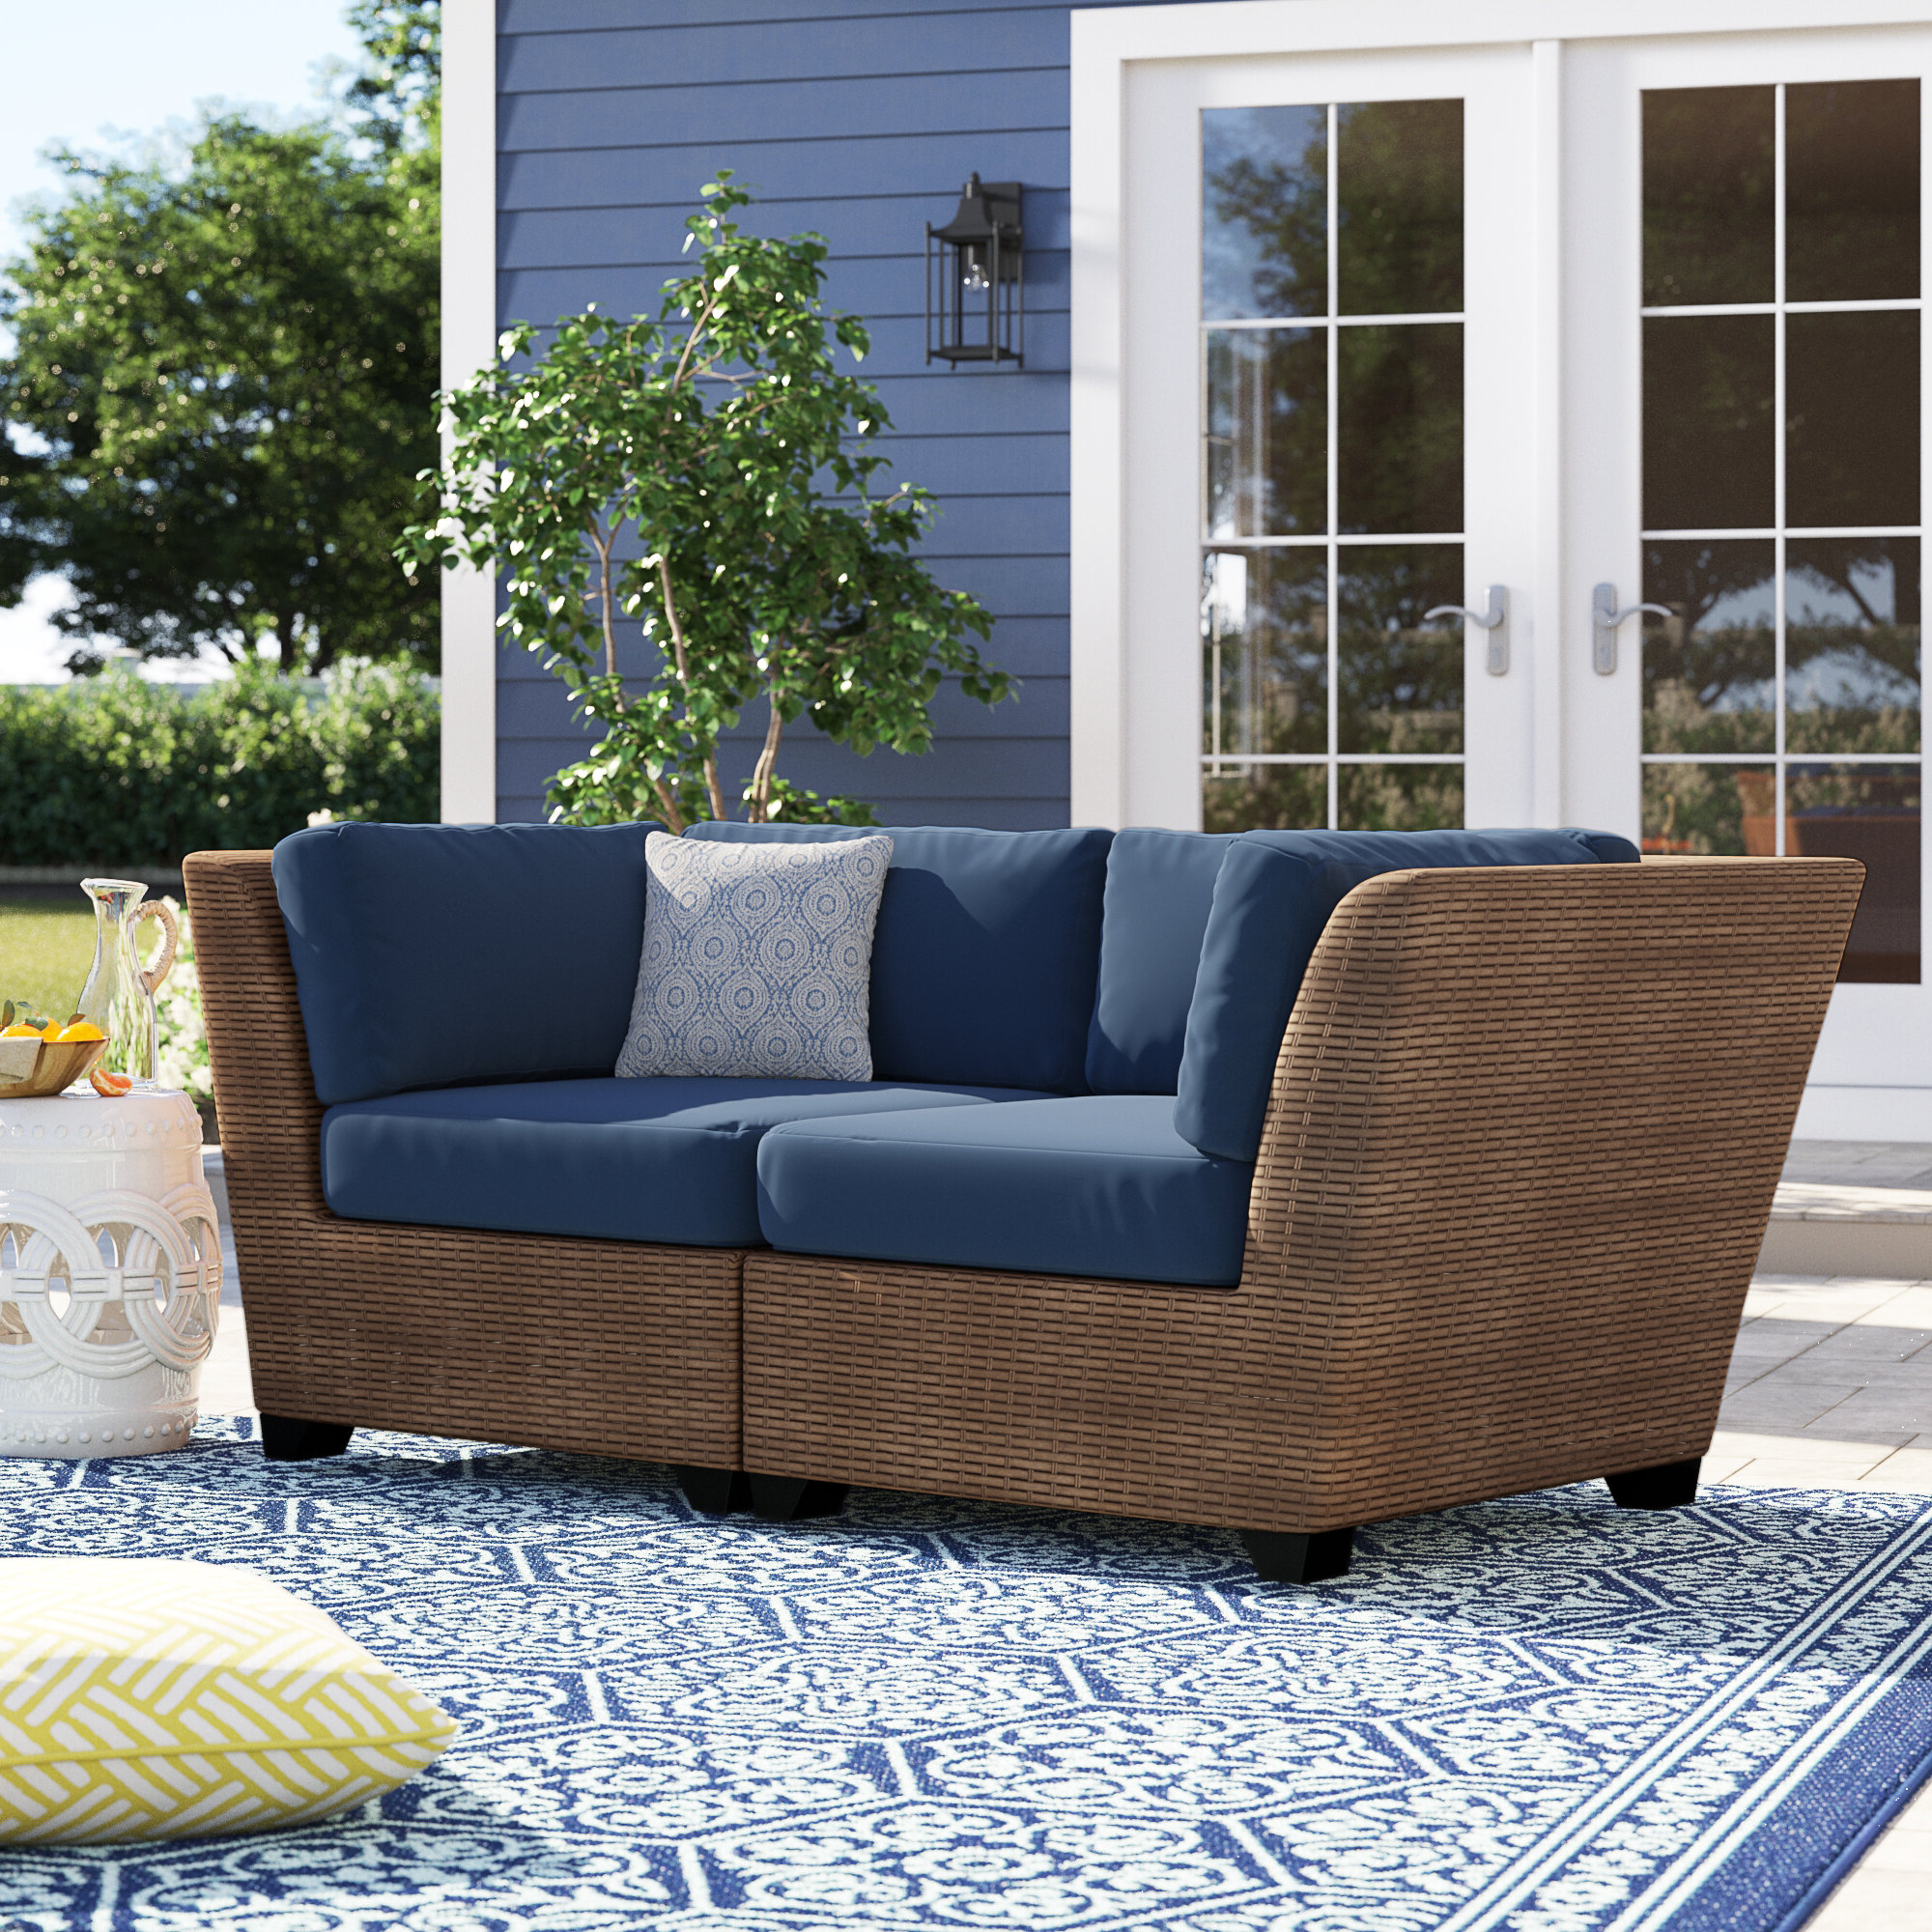 Waterbury Corner Sofa With Cushions For Best And Newest Wrobel Patio Sectionals With Cushion (View 12 of 20)